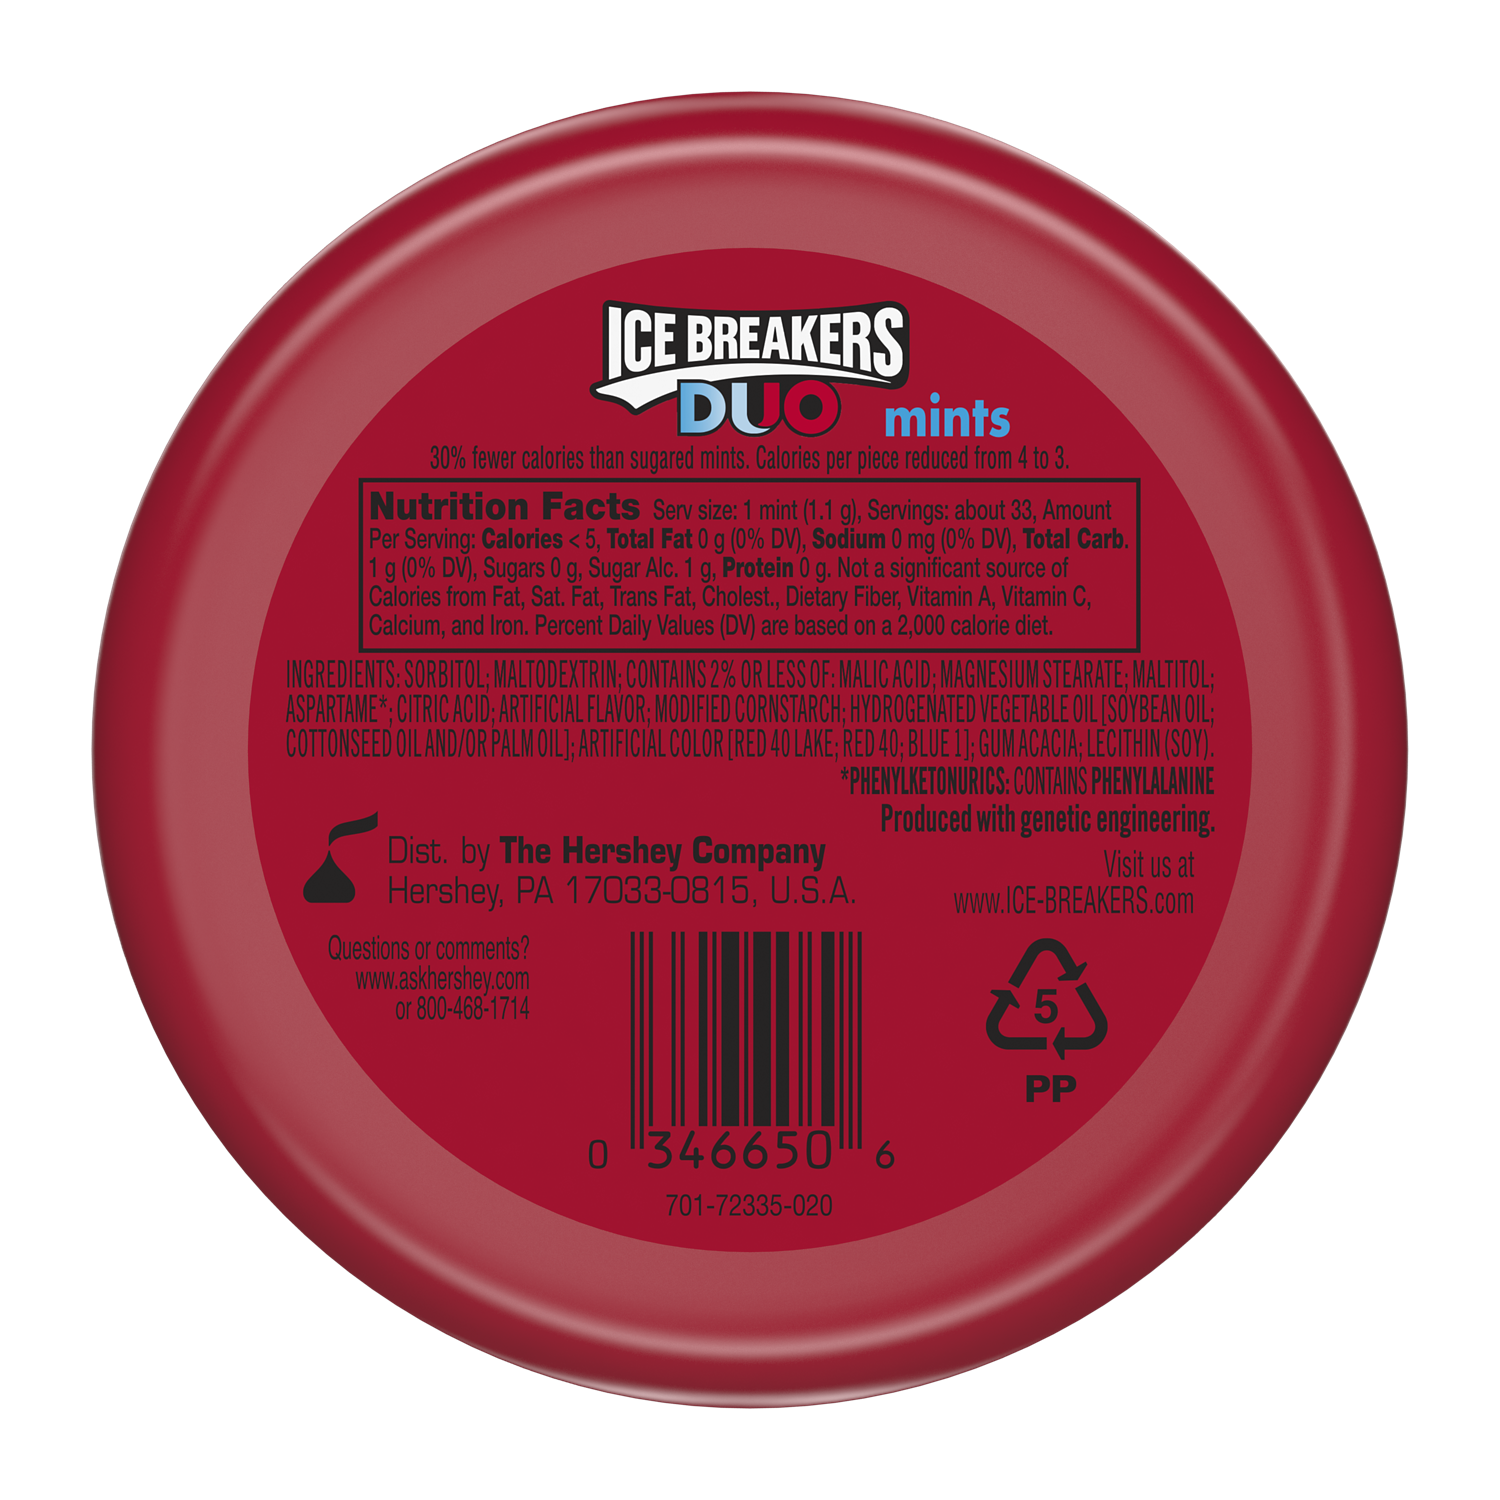 ICE BREAKERS DUO Strawberry Sugar Free Mints, 1.3 oz puck - Back of Package